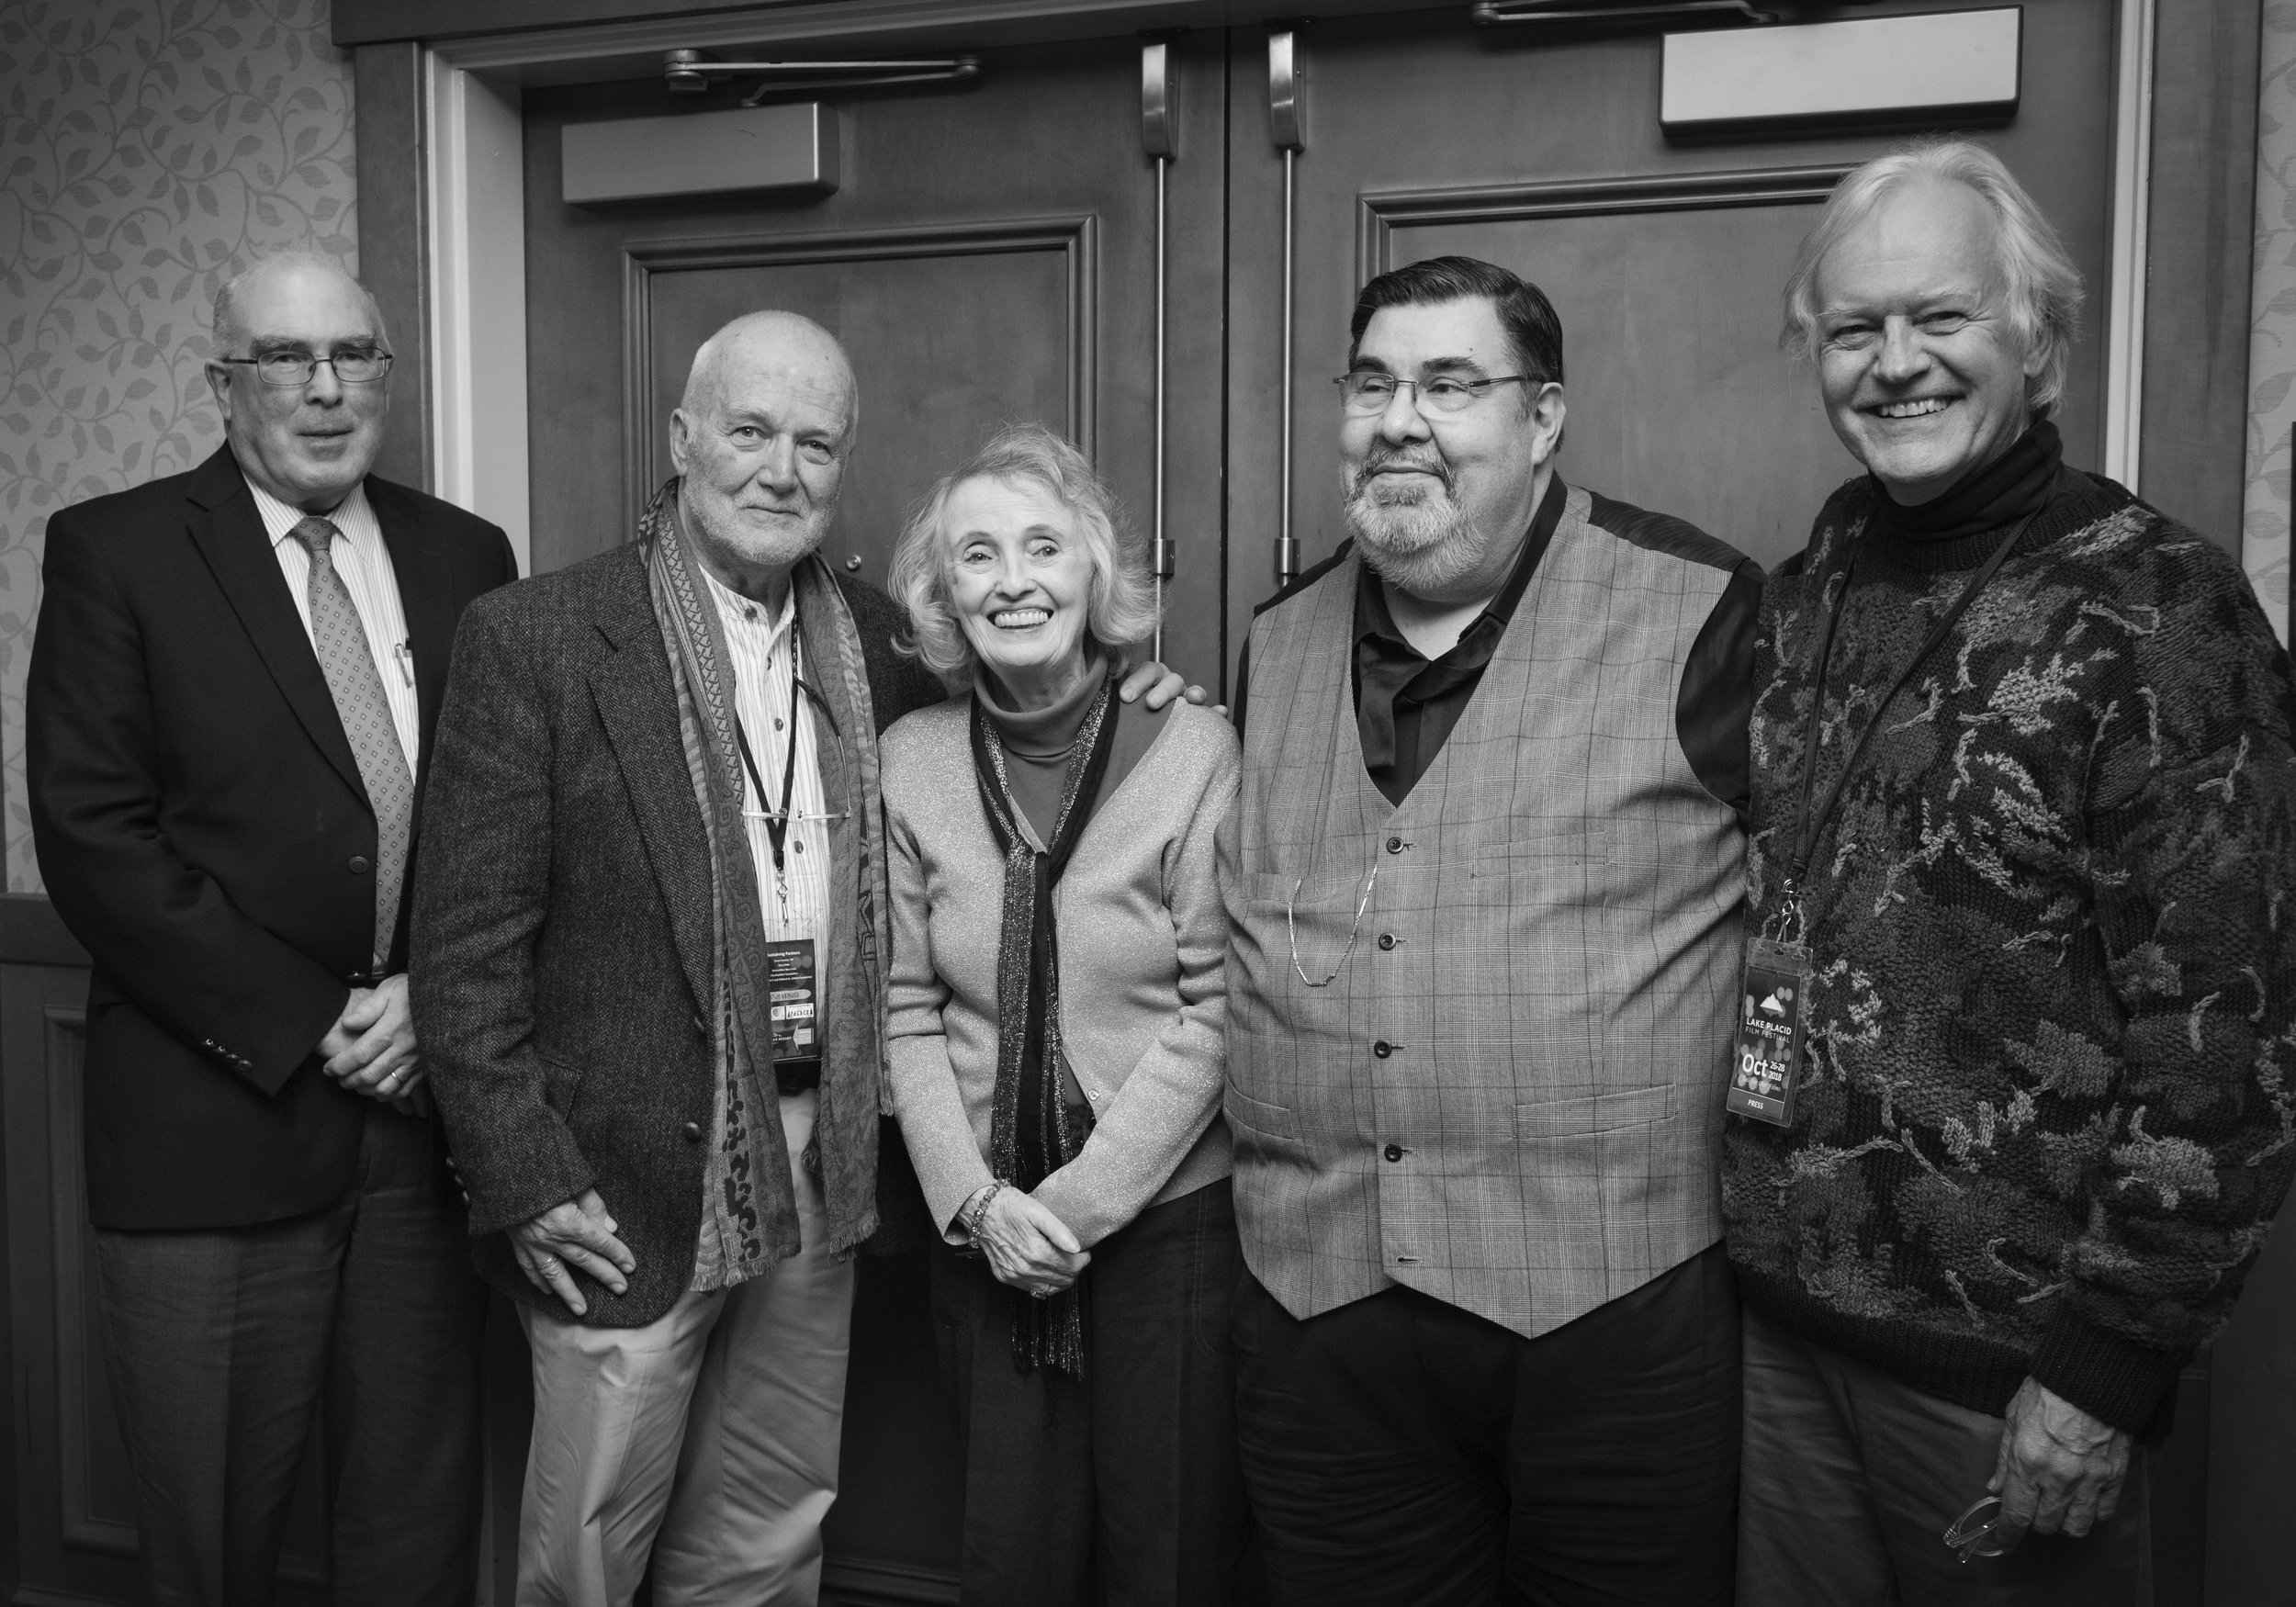 ADIRONDACK FILM SOCIETY / LAKE PLACID FILM FESTIVAL CO-FOUNDERS WITH 2019 TRIBUTE GALA HONOREE RUSSELL BANKS AT 2018 TRIBUTE GALA HONORING KATHLEEN CARROLL)  (LEFT TO RIGHT: JOHN HUTTLINGER, RUSSELL BANKS, KATHLEEN CARROLL, NELSON PAGE, NAJ WYCOFF)